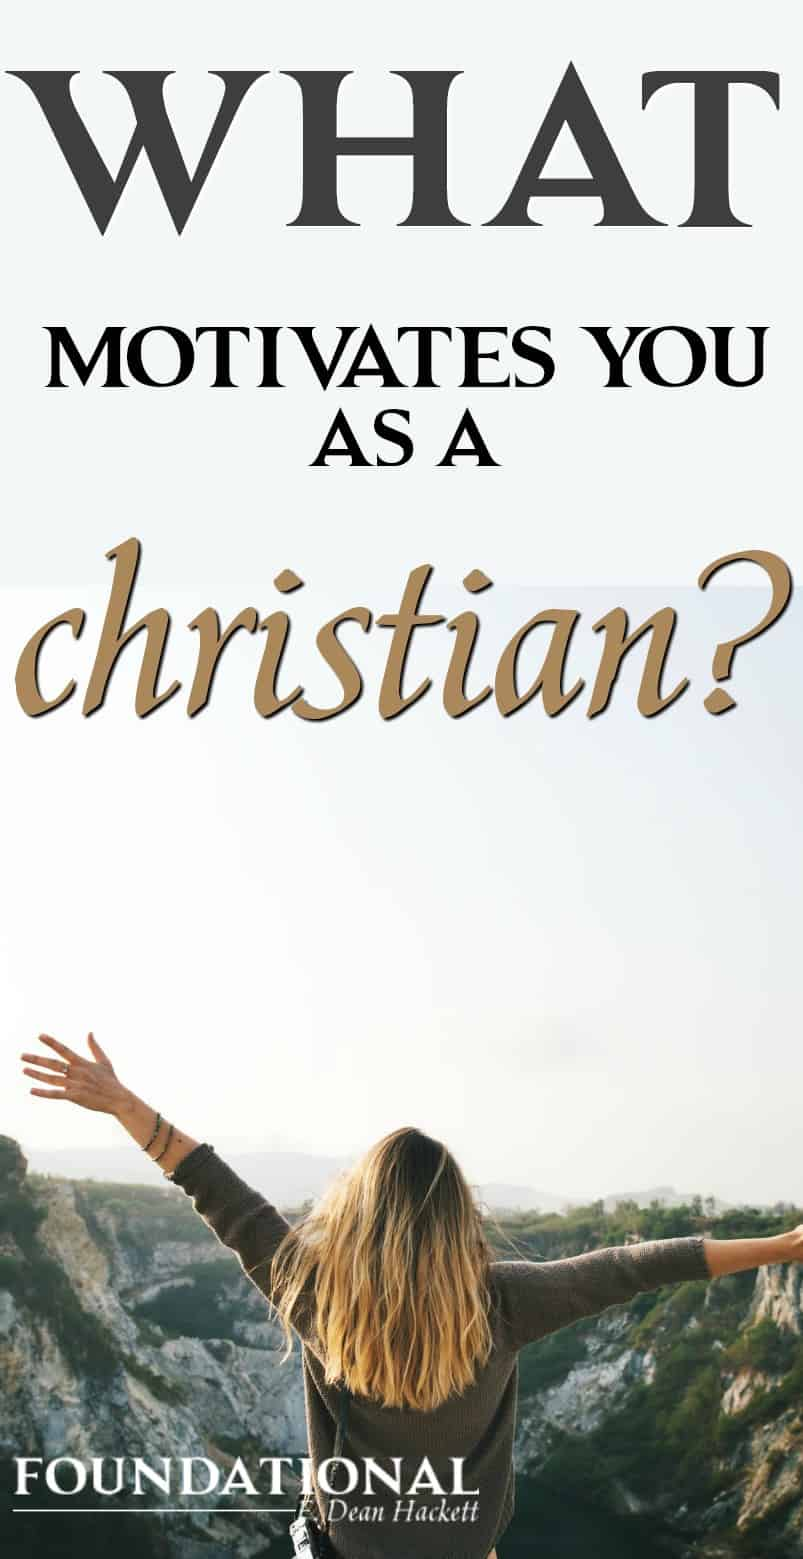 There are many things that motivate us in life, but there is one thing that should be the number one motivation for every Christian. Foundational | F Dean Hackett | Christianity | Christian living | Christian blog | Christian faith | Motivation | Golden Rule | #christianblog #christianfaith #spiritualgrowth #Bible #God #motivation #goldenrule